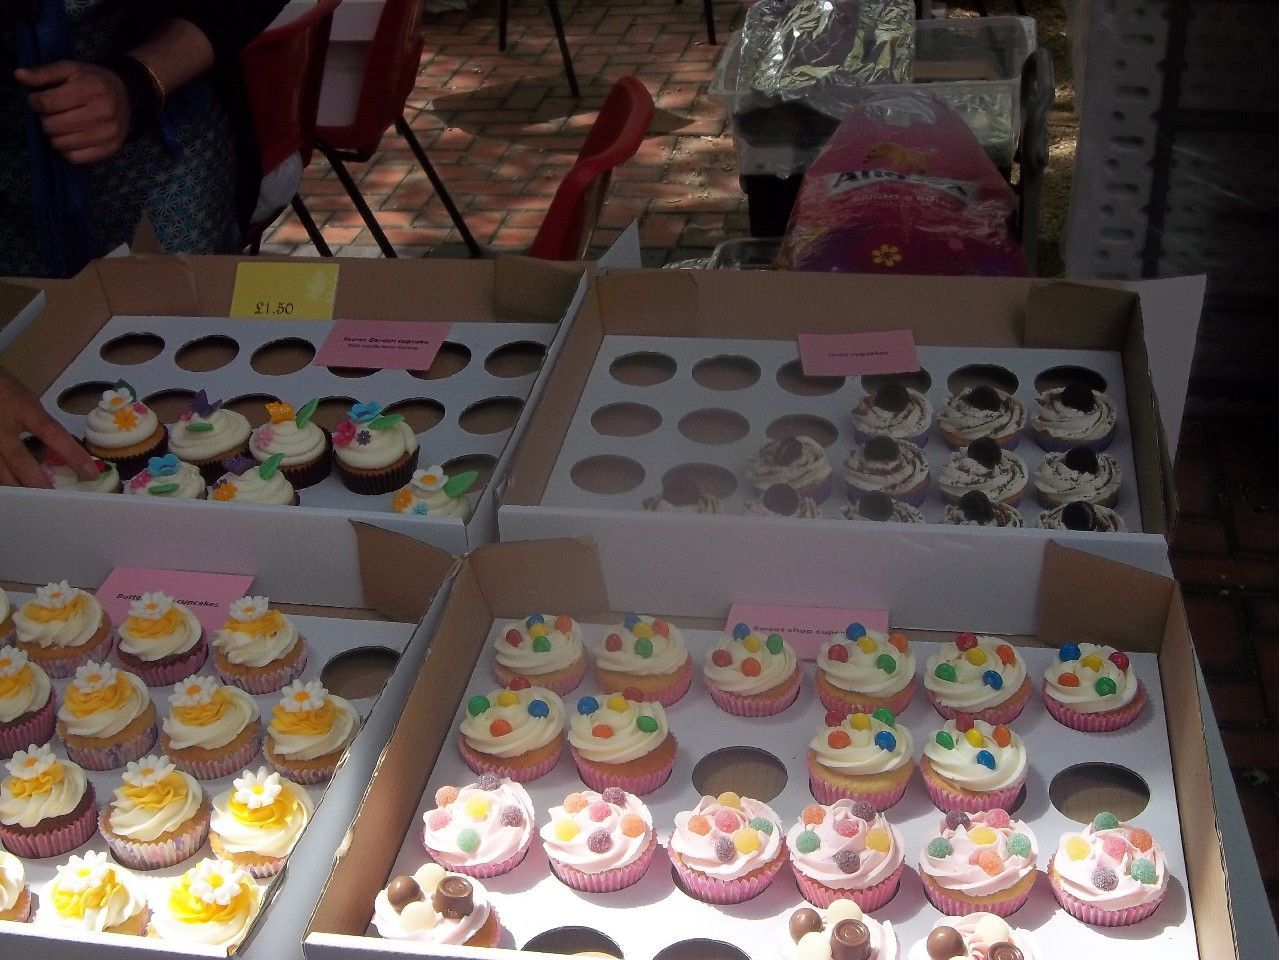 Cake Stall Presentation With Images Bake Sale Displays Cake